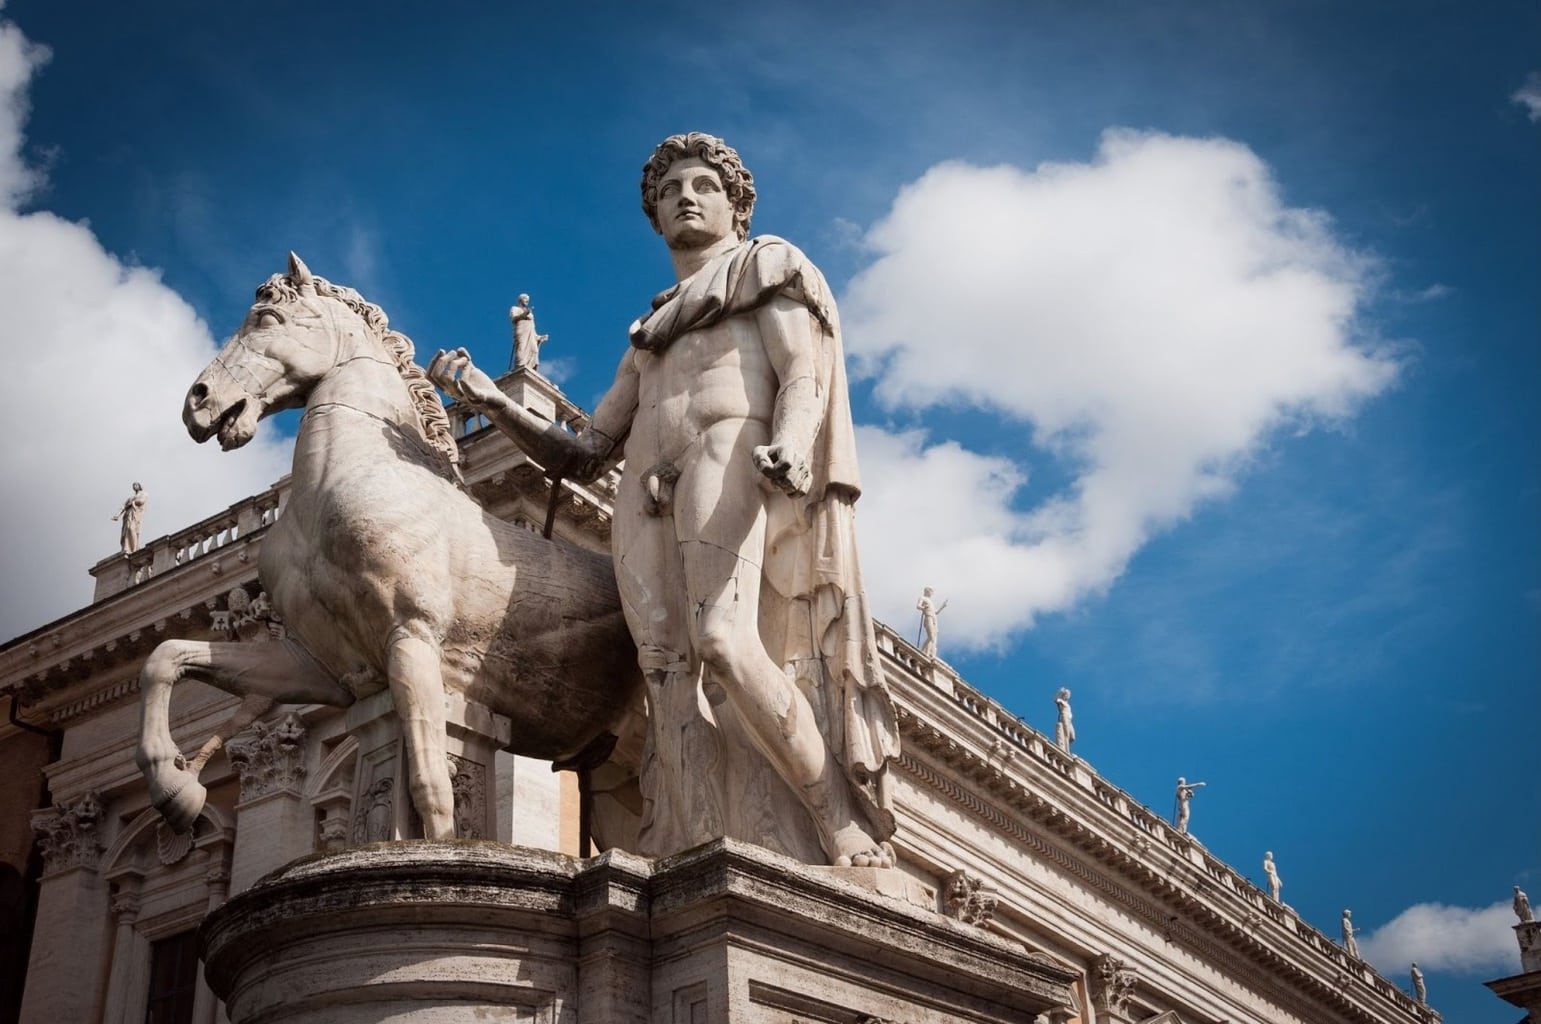 Statue of Romulus on Capitoline Hill